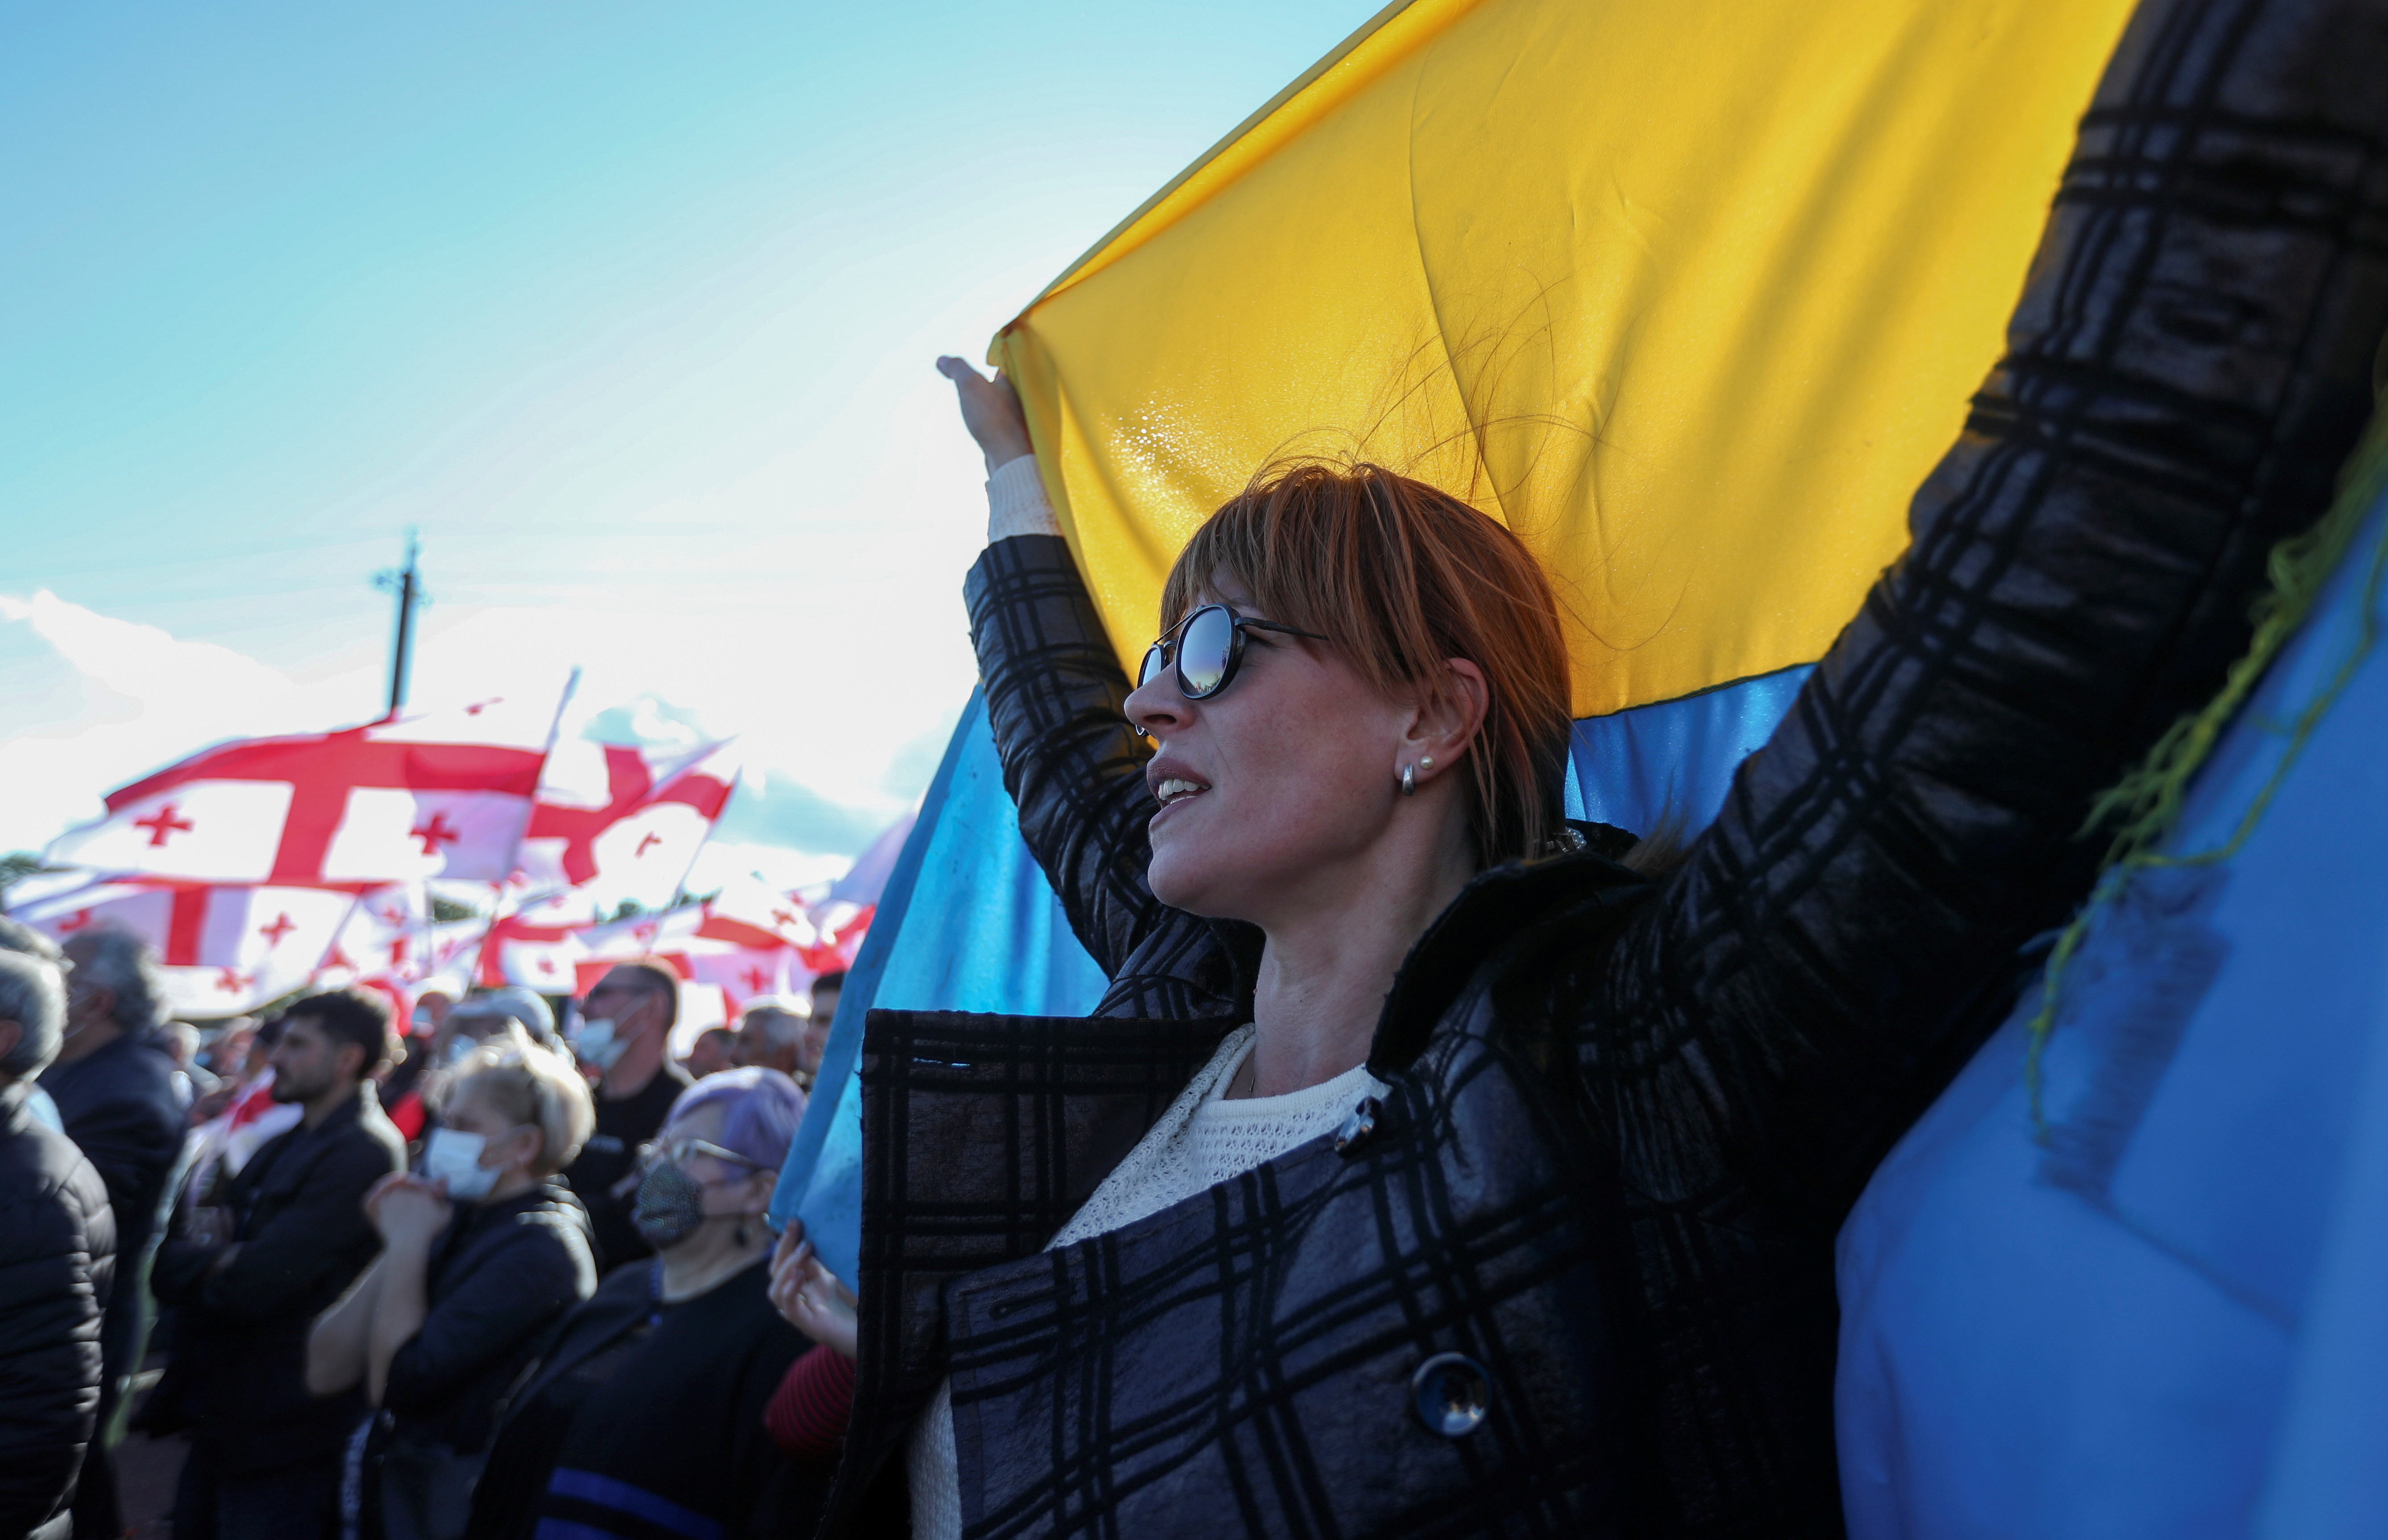 A participant holds a Ukrainian flag during a rally held by supporters of Georgian ex-president Mikheil Saakashvili, who called for post-election street protests and was arrested upon his arrival in Georgia despite facing imprisonment, near a jail in Rustavi, Georgia October 4, 2021. REUTERS/Irakli Gedenidze